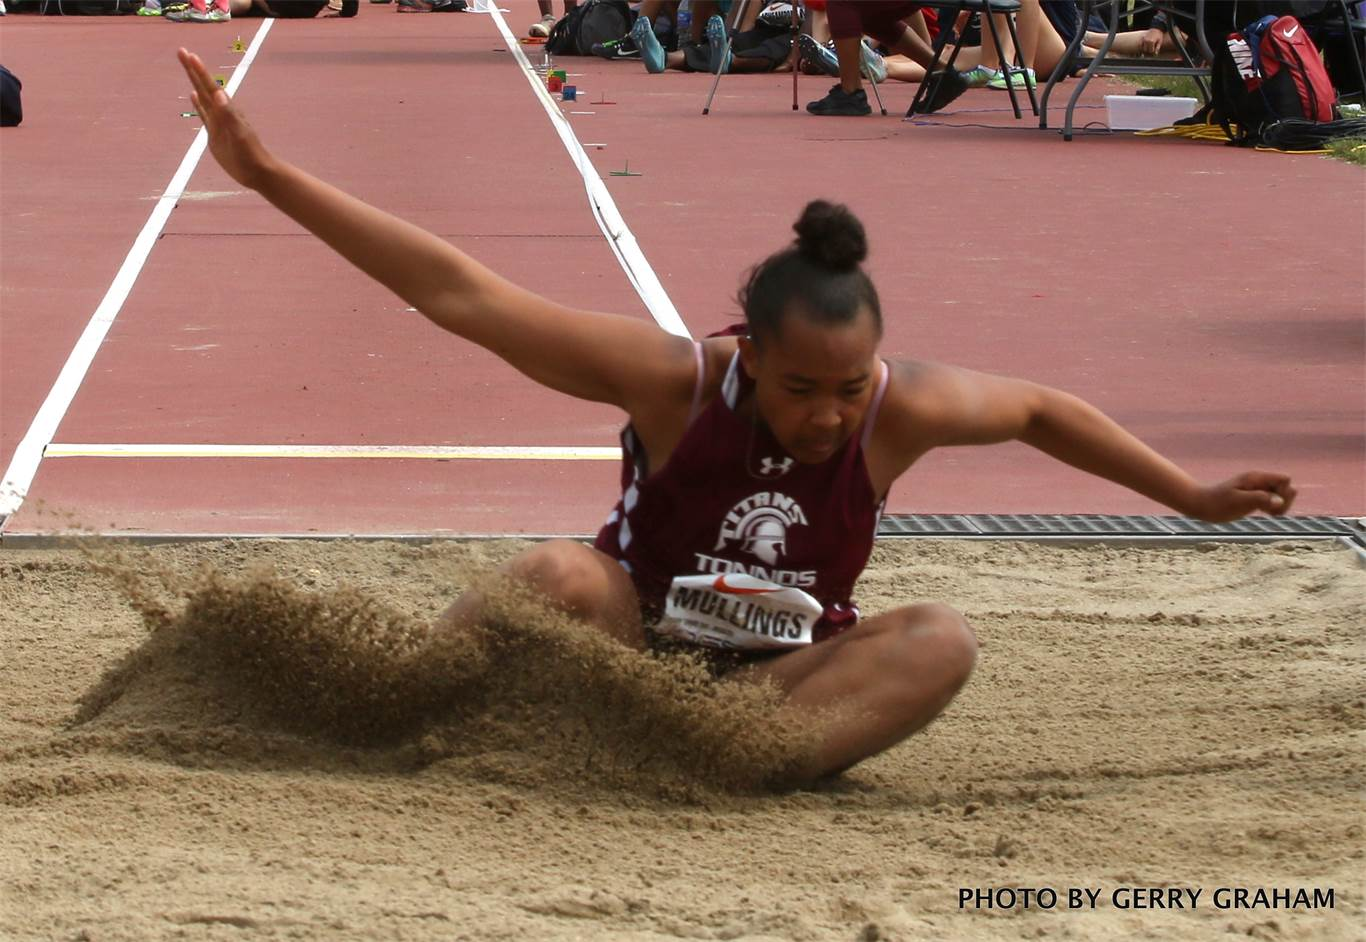 Jaden Mullings of Bishop Tonnos wins a gold medal in the midget girls' long jump Thursday with a best leap of 5.24 metres. Photo by Gerry Graham.